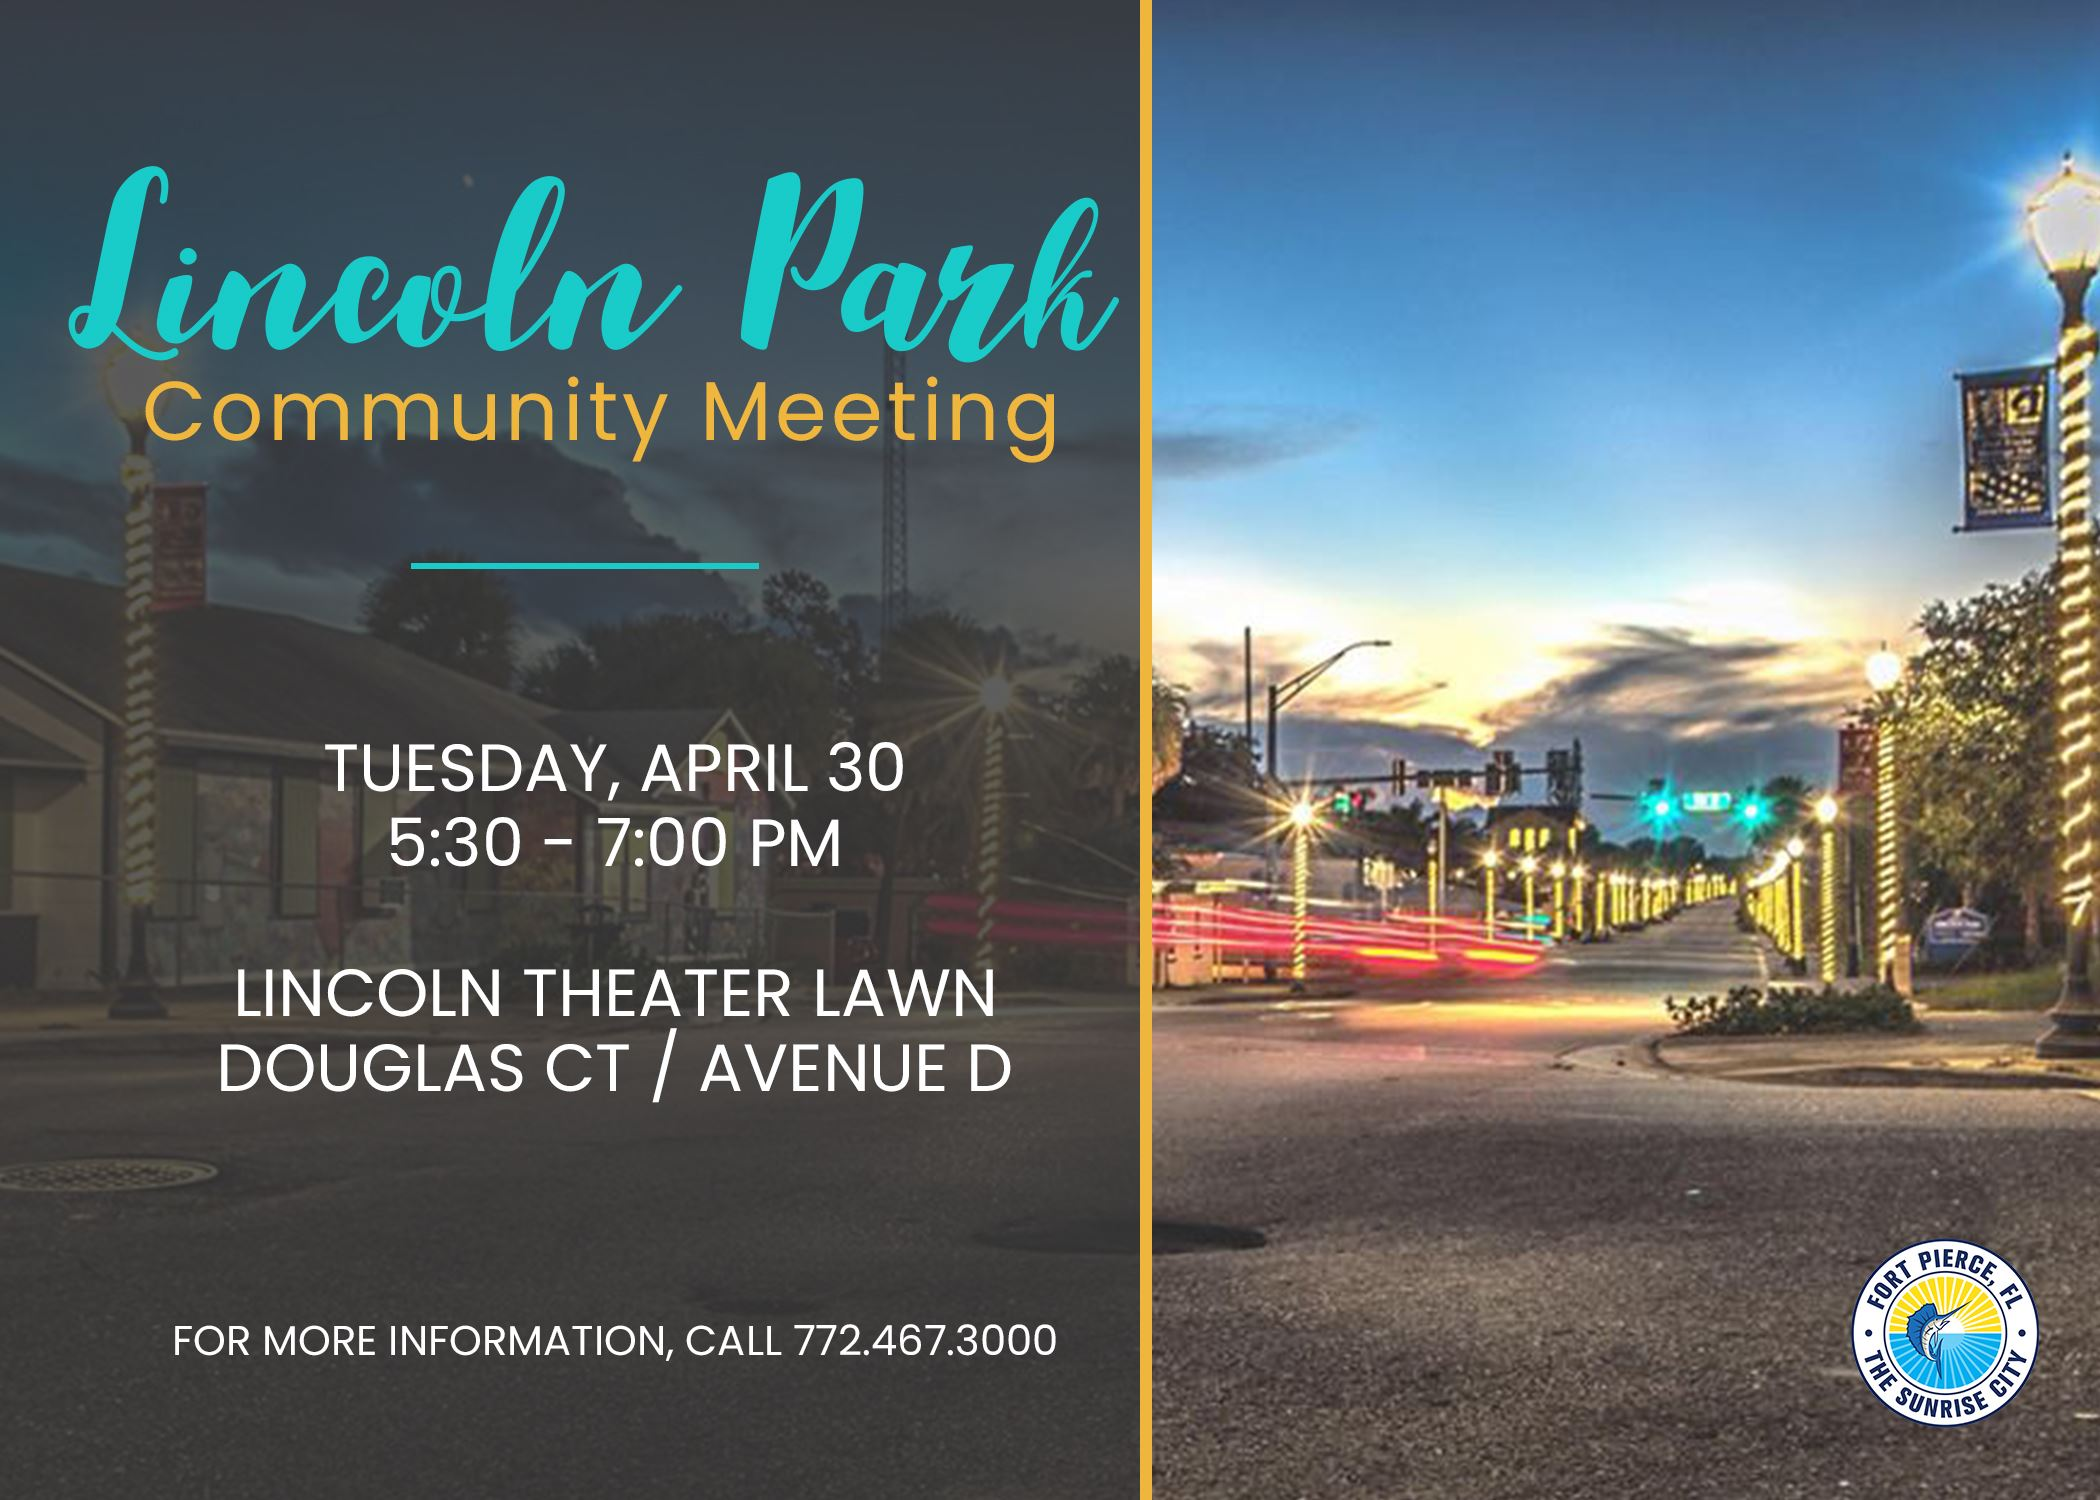 Lincoln Park Community Meeting